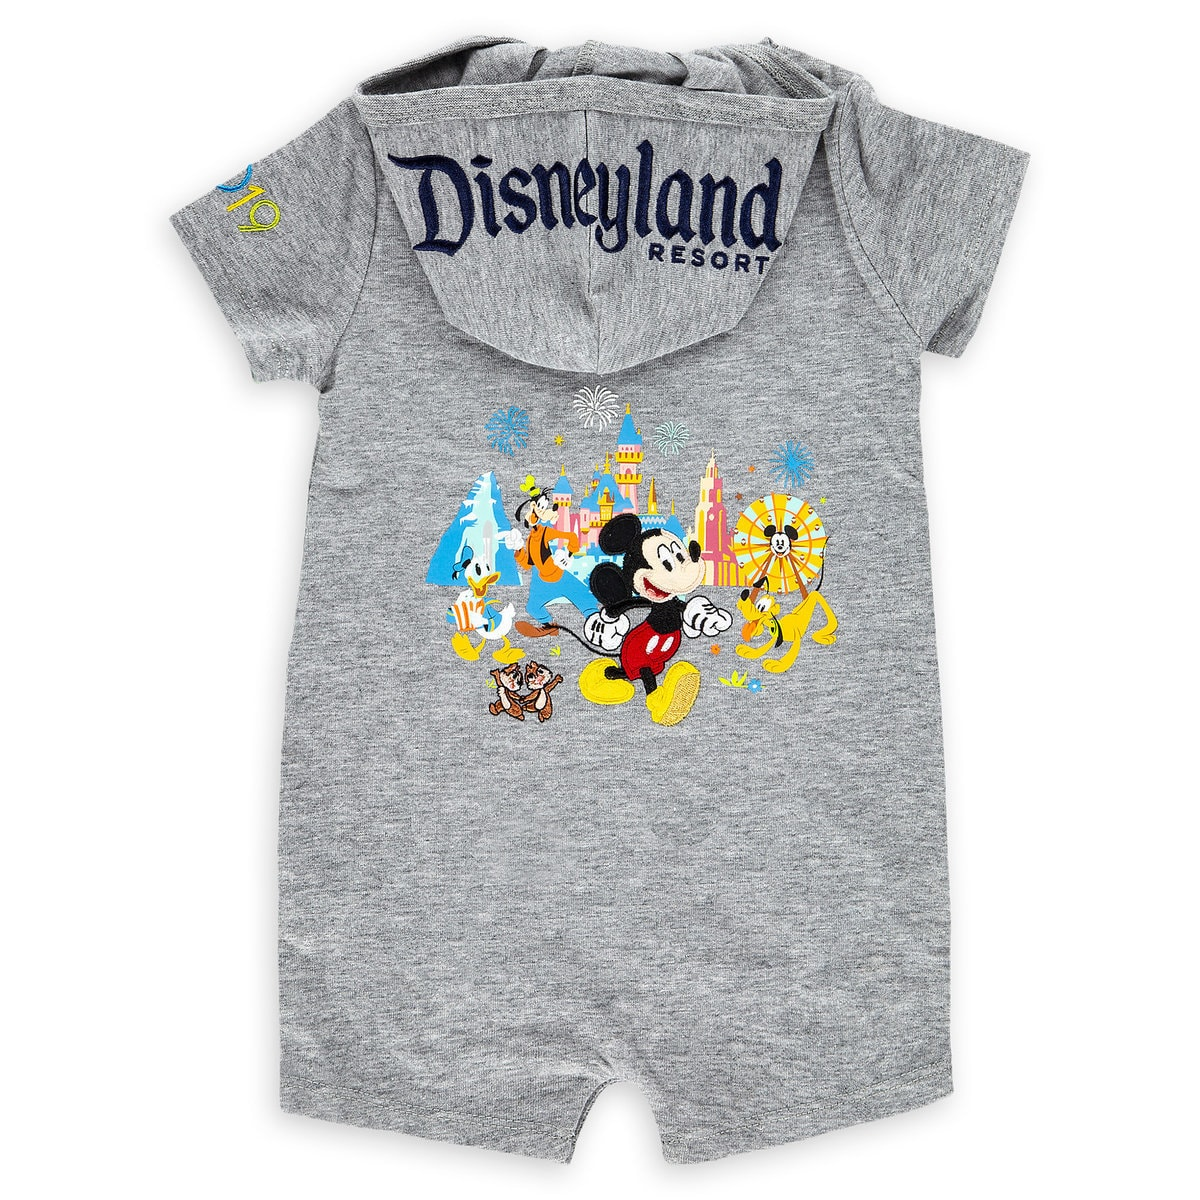 1a4399217 Product Image of Mickey Mouse and Friends Romper for Baby - Disneyland 2019  # 2